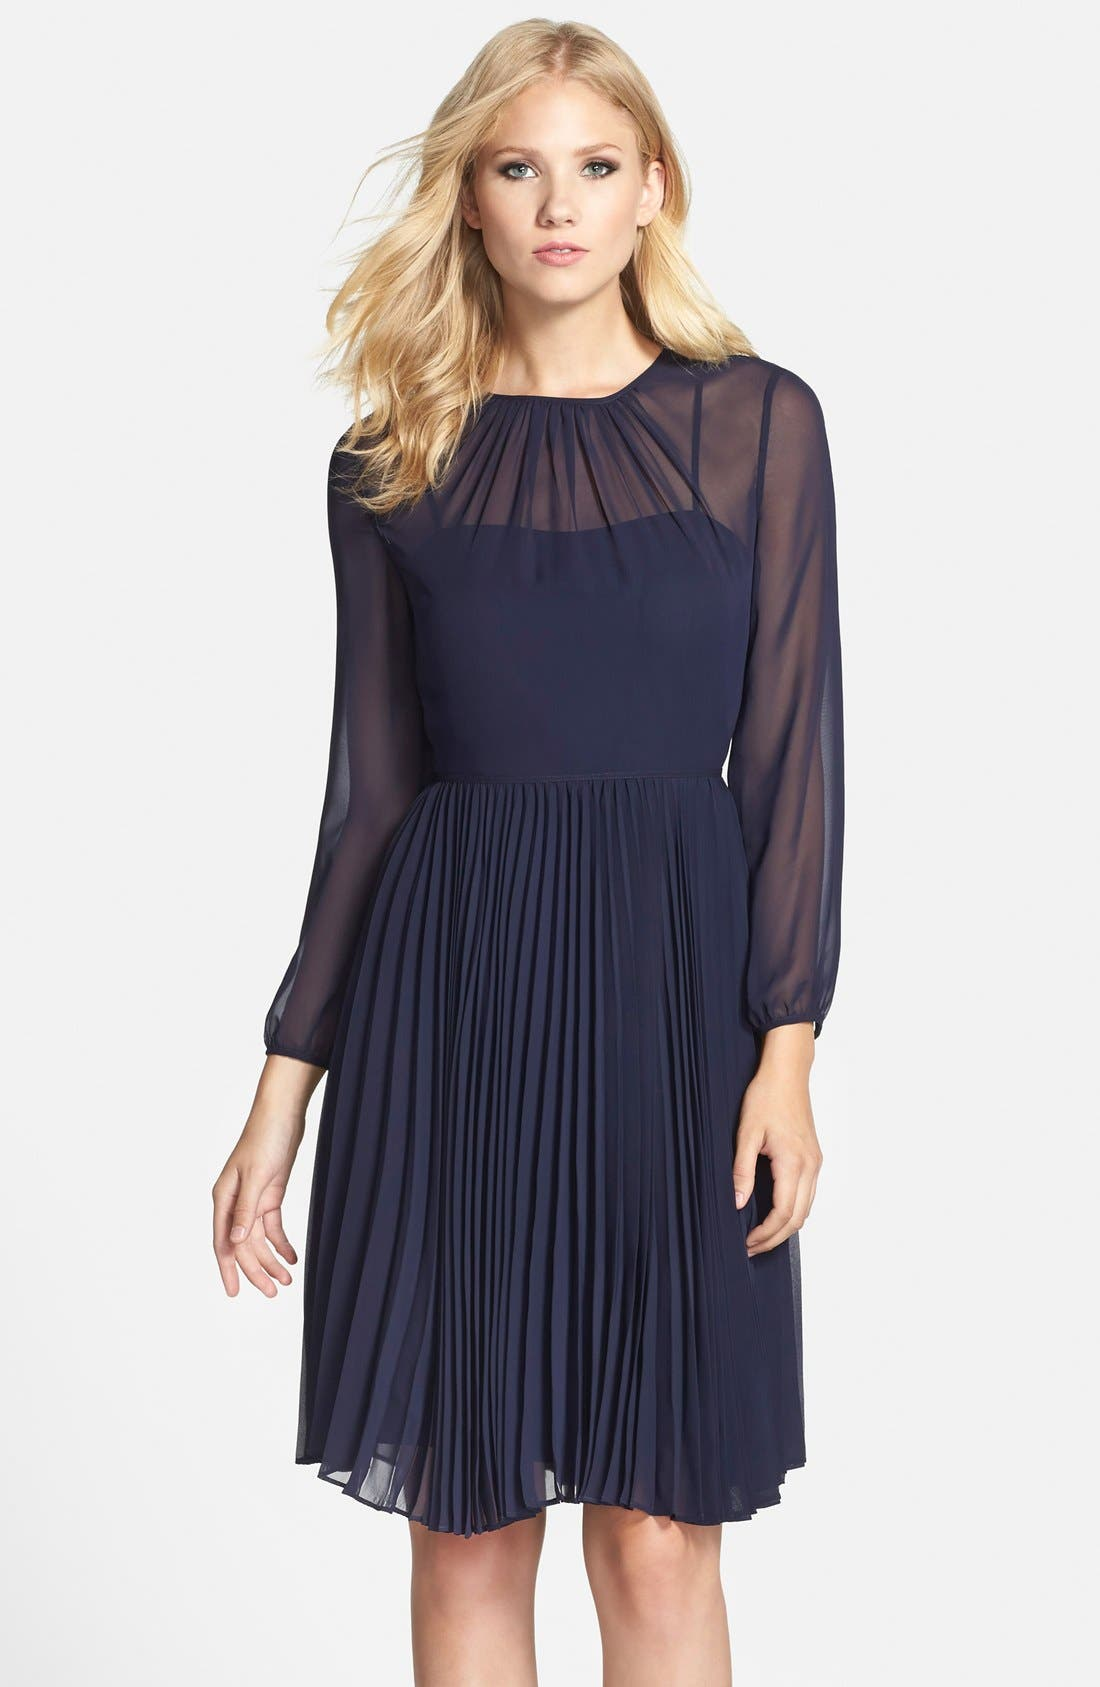 ELIZA J Pleated Chiffon Fit & Flare Dress, Main, color, 410